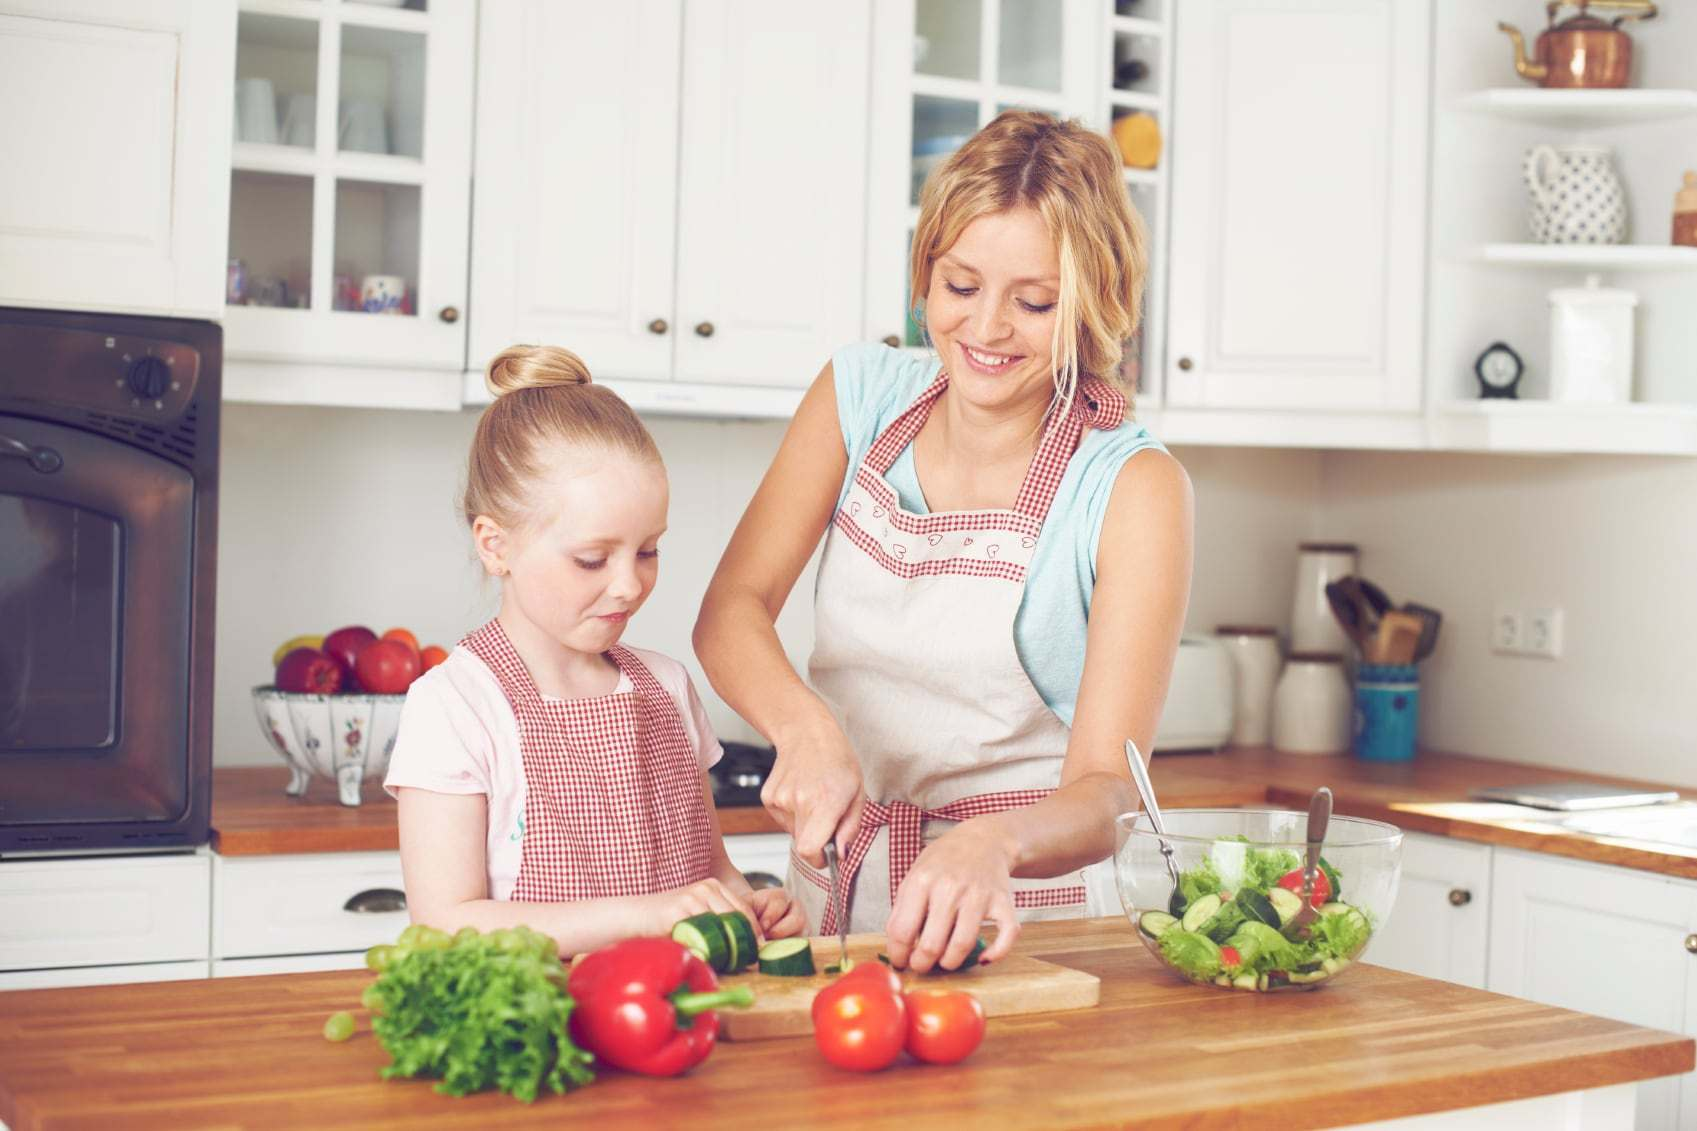 Let your Children Help in the Kitchen